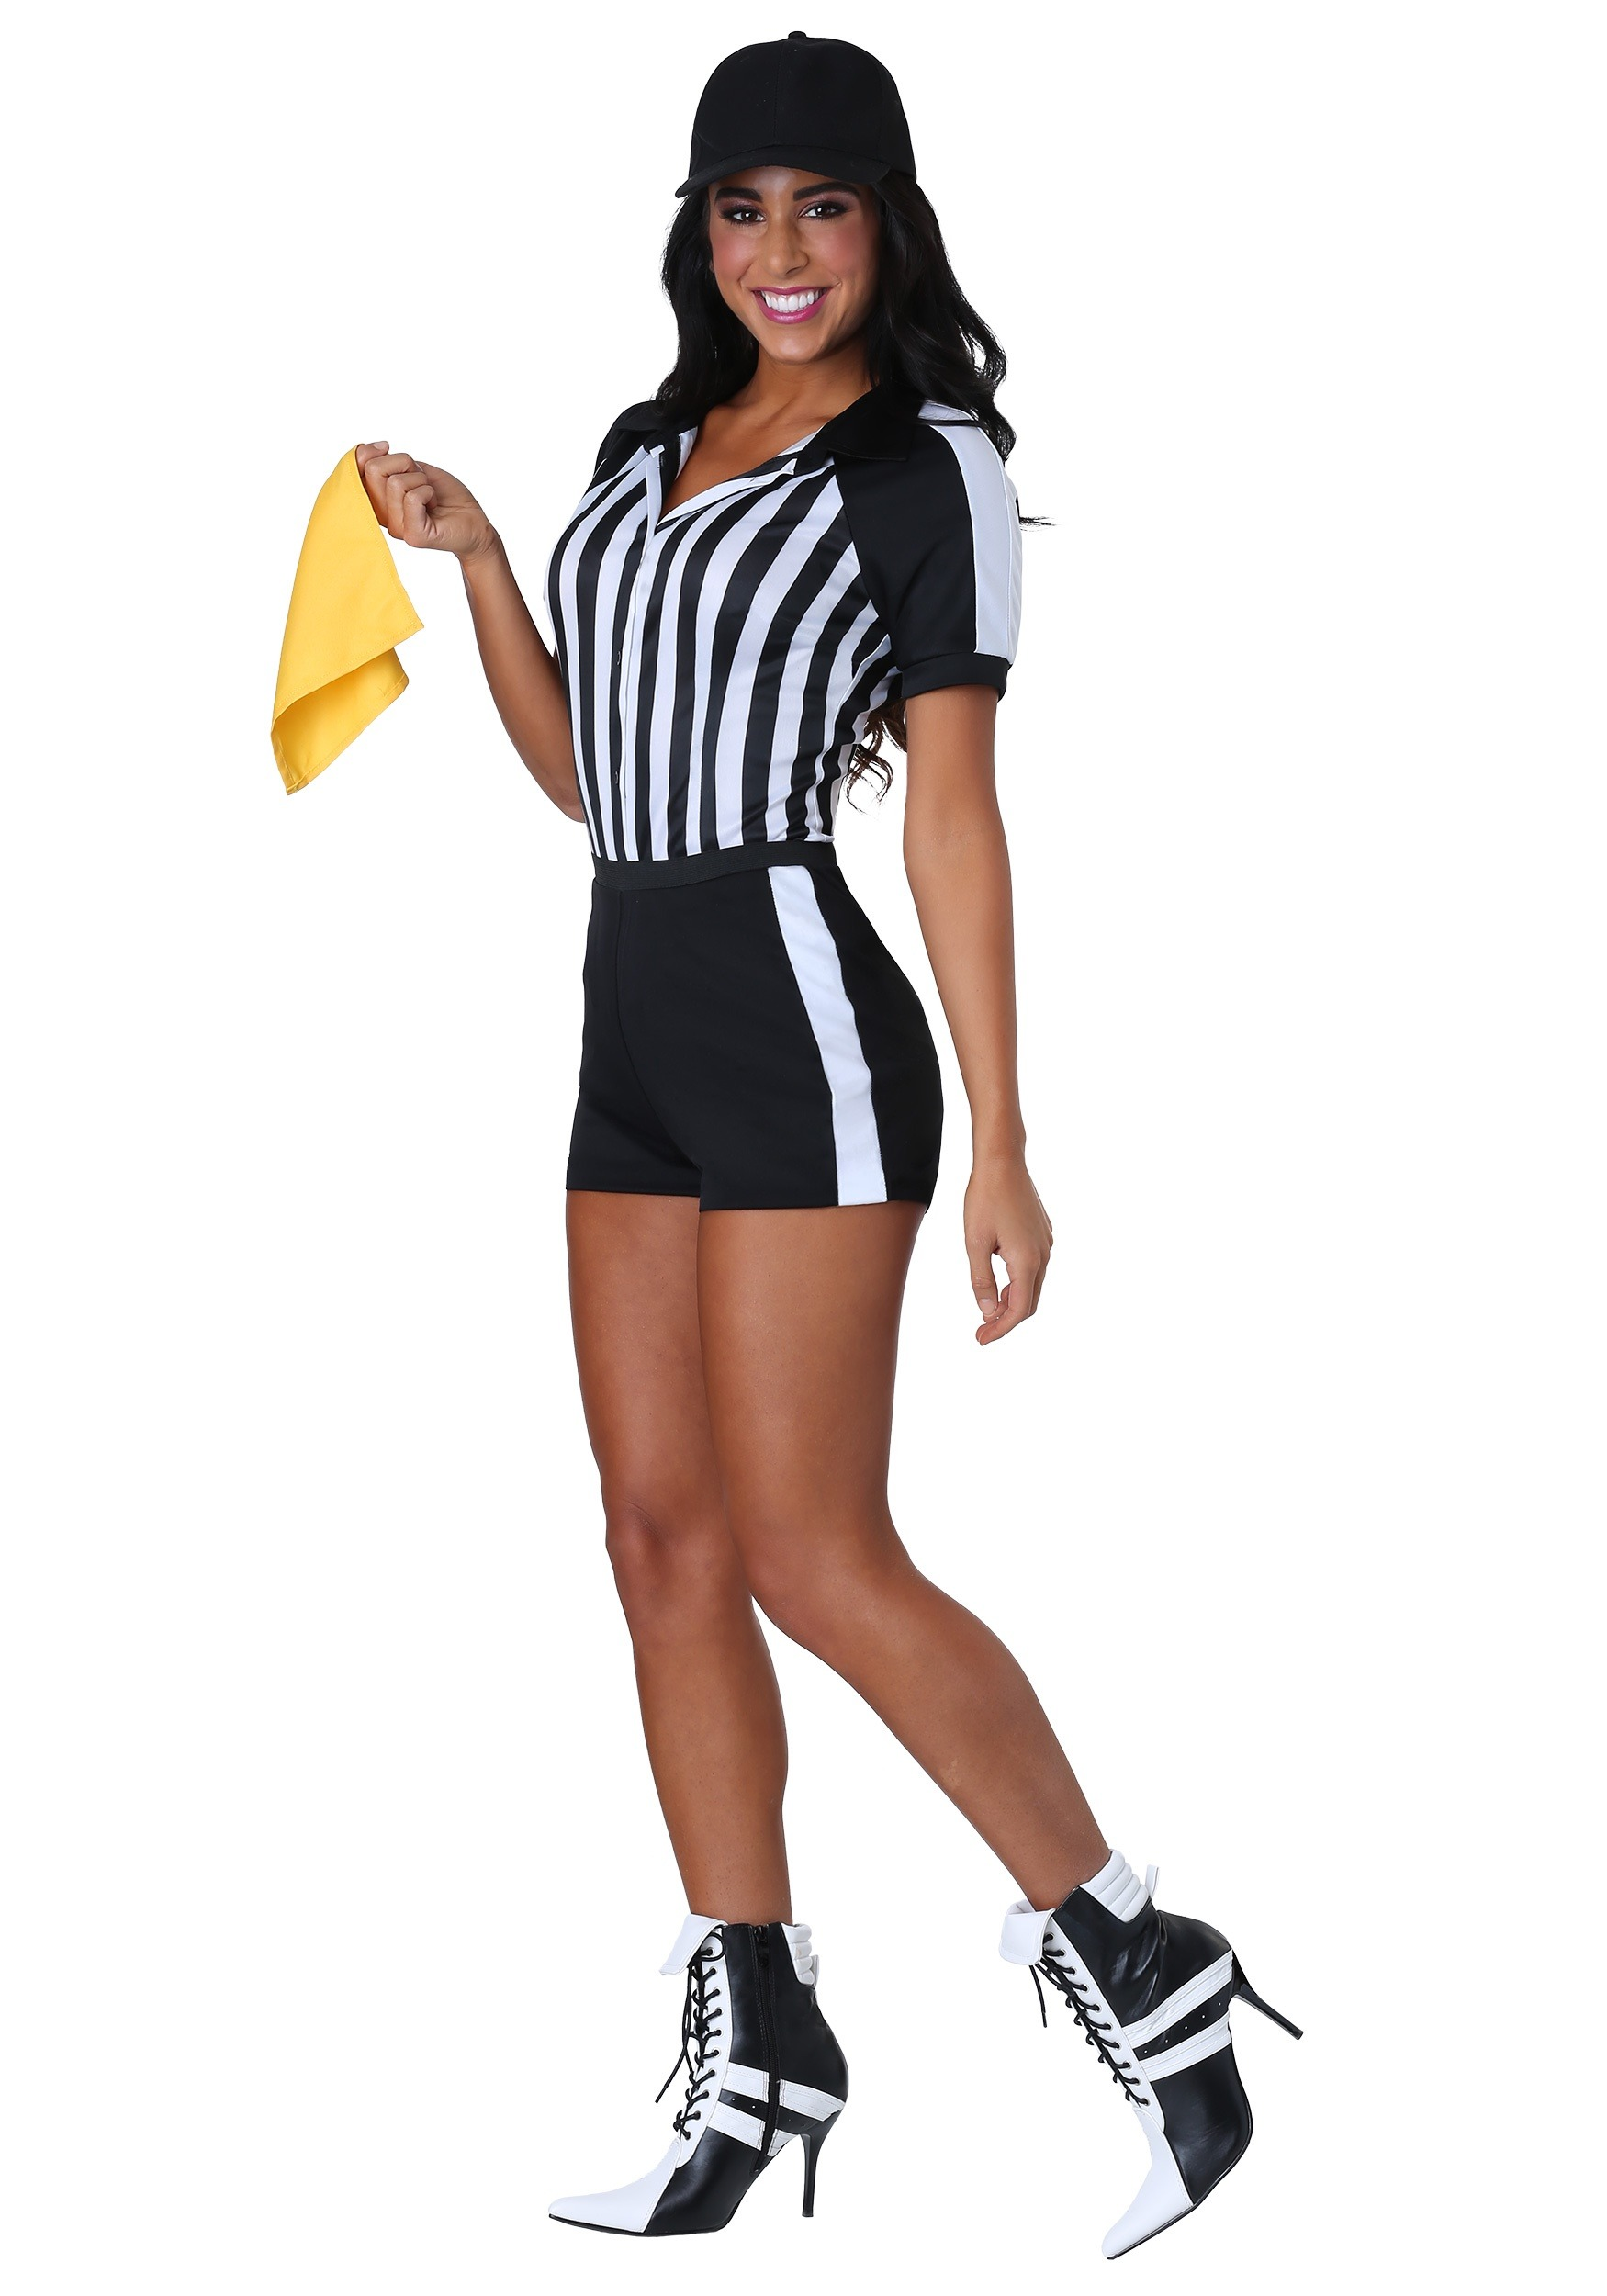 Racy Referee Costume for Women